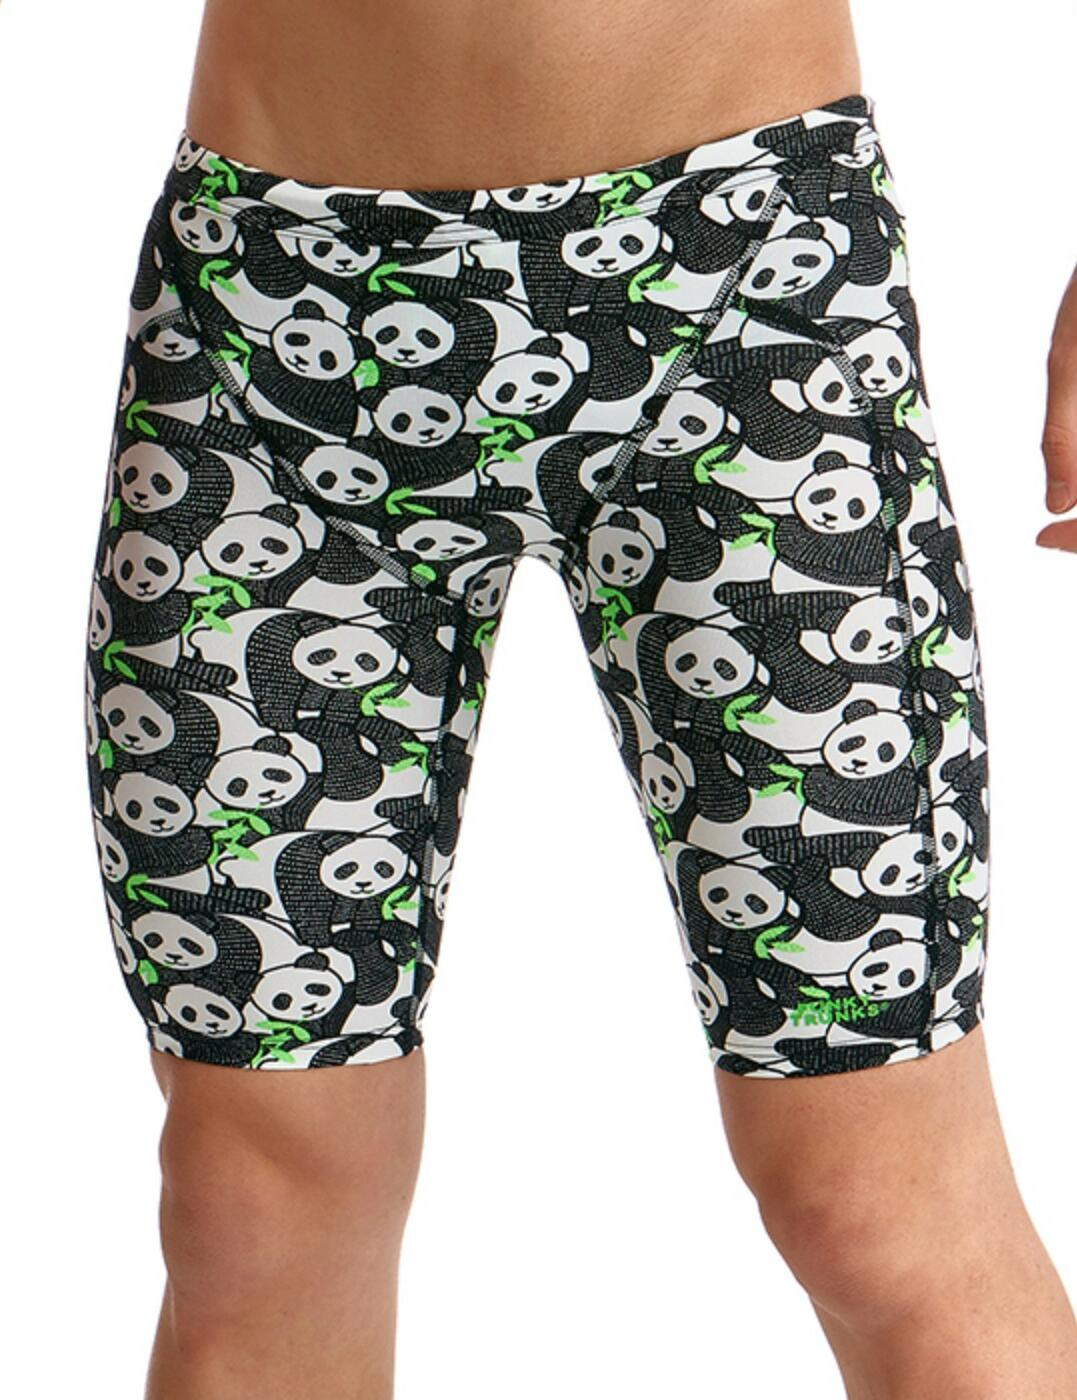 FTS003B Funky Trunks Boys Eco Training Jammers - FTS003B02326 Pandaddy